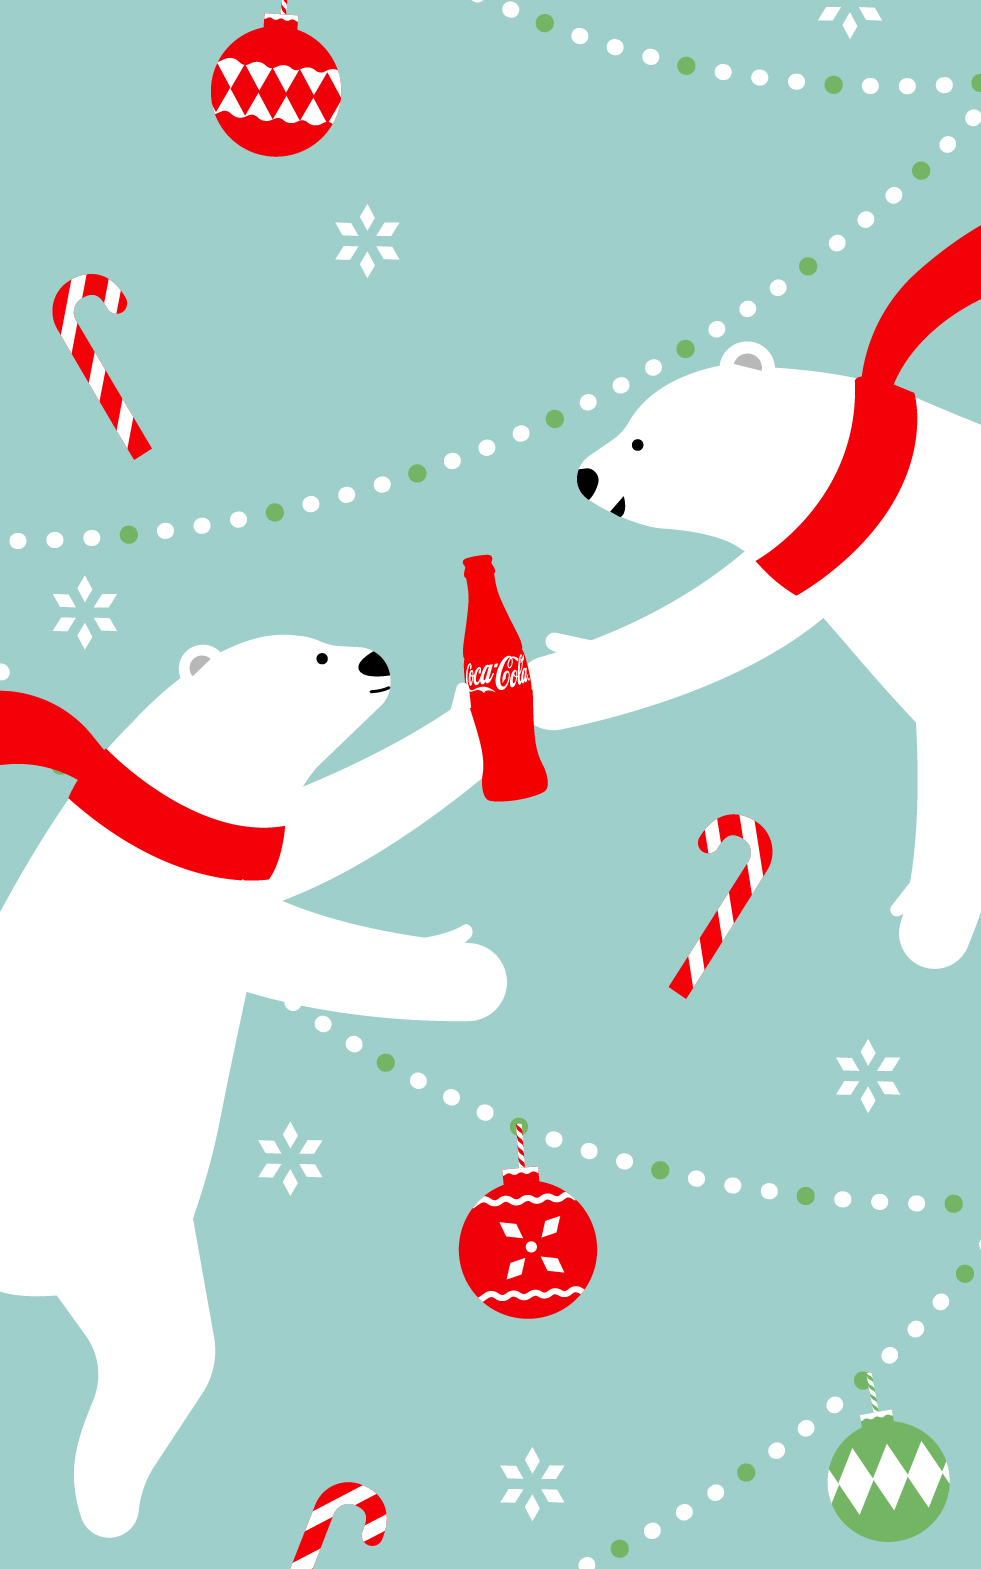 Coke_Holiday_v08_YM_4 copy.jpg